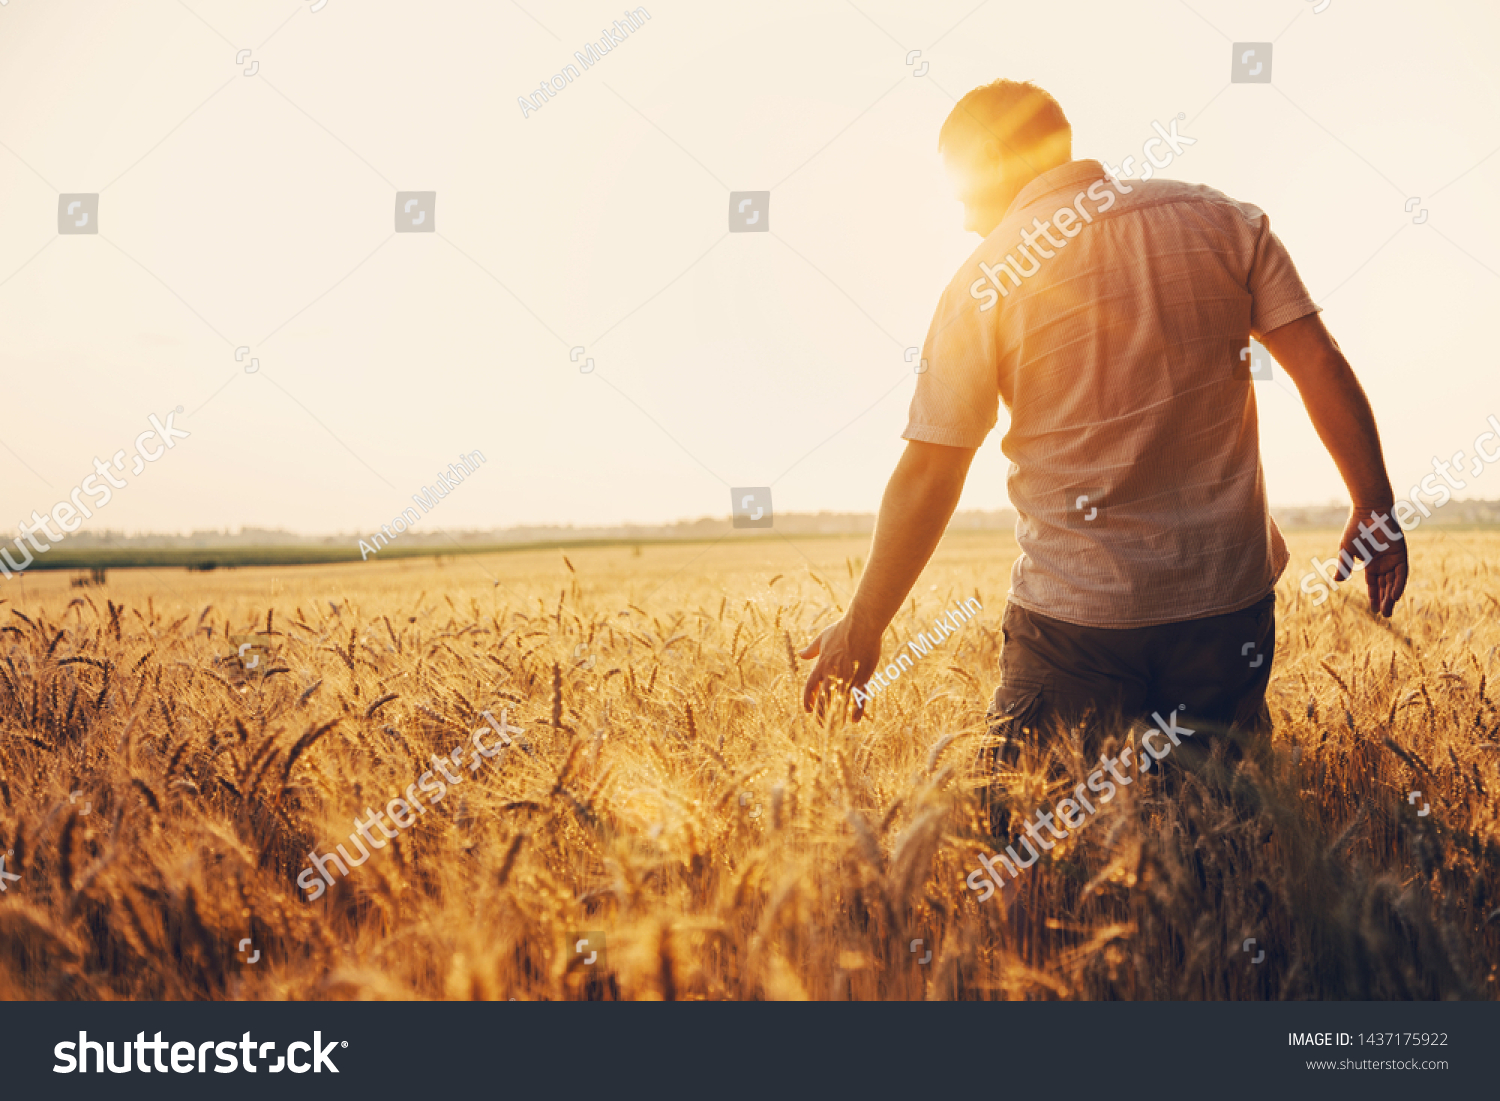 Silhouette of Man agronomist farmer in golden wheat field. Male holds ears of wheat in hand. #1437175922